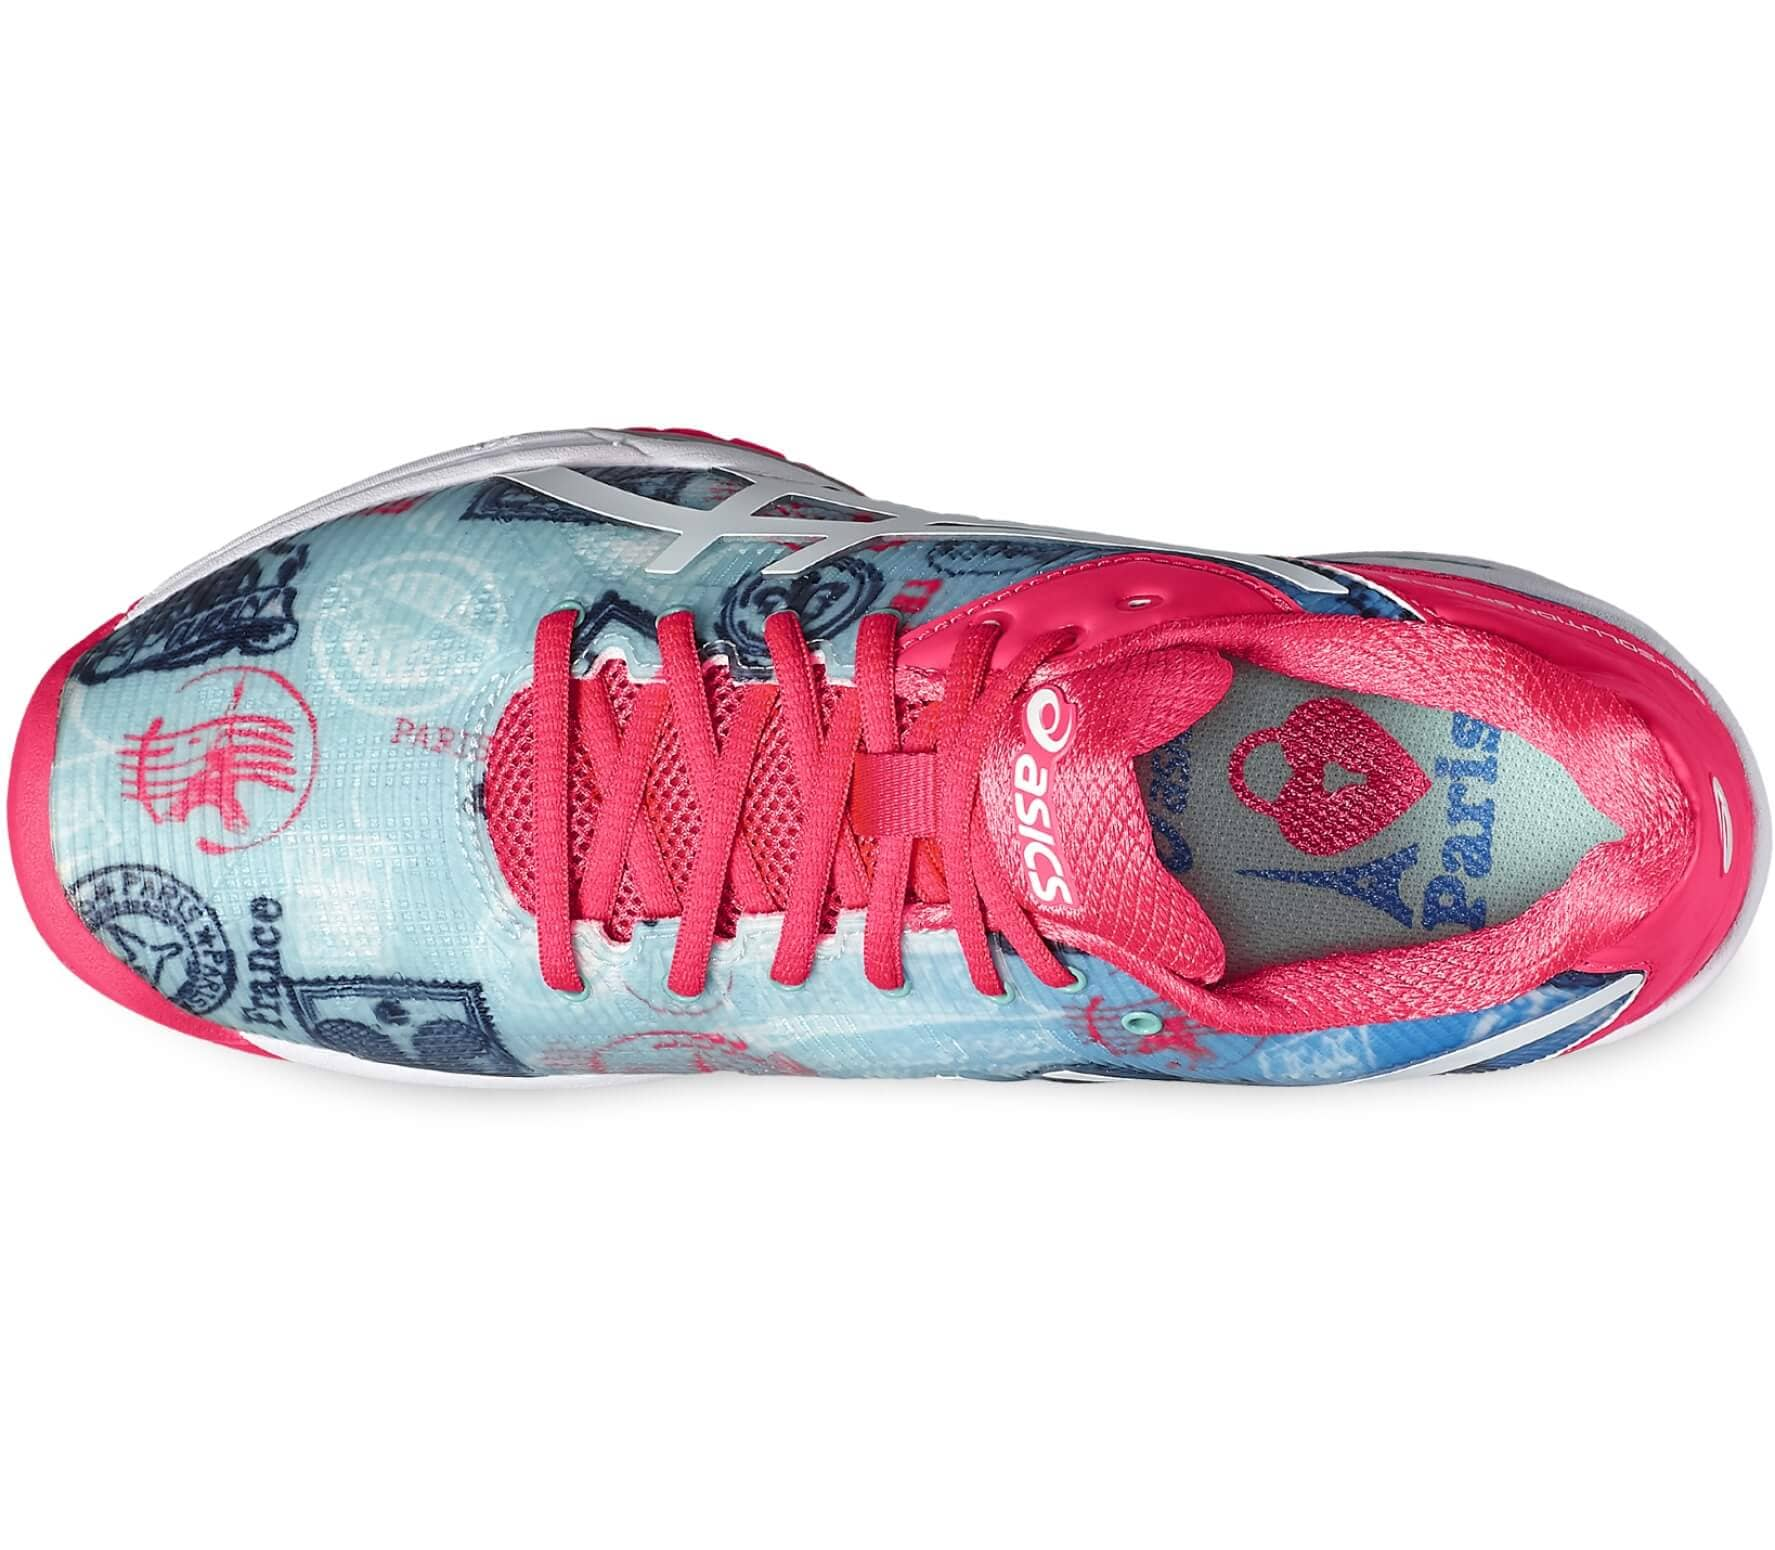 26ec4ce4eecd Asics - Gel-Solution Speed 3 L.E. Pari women s tennis shoes (blue pink